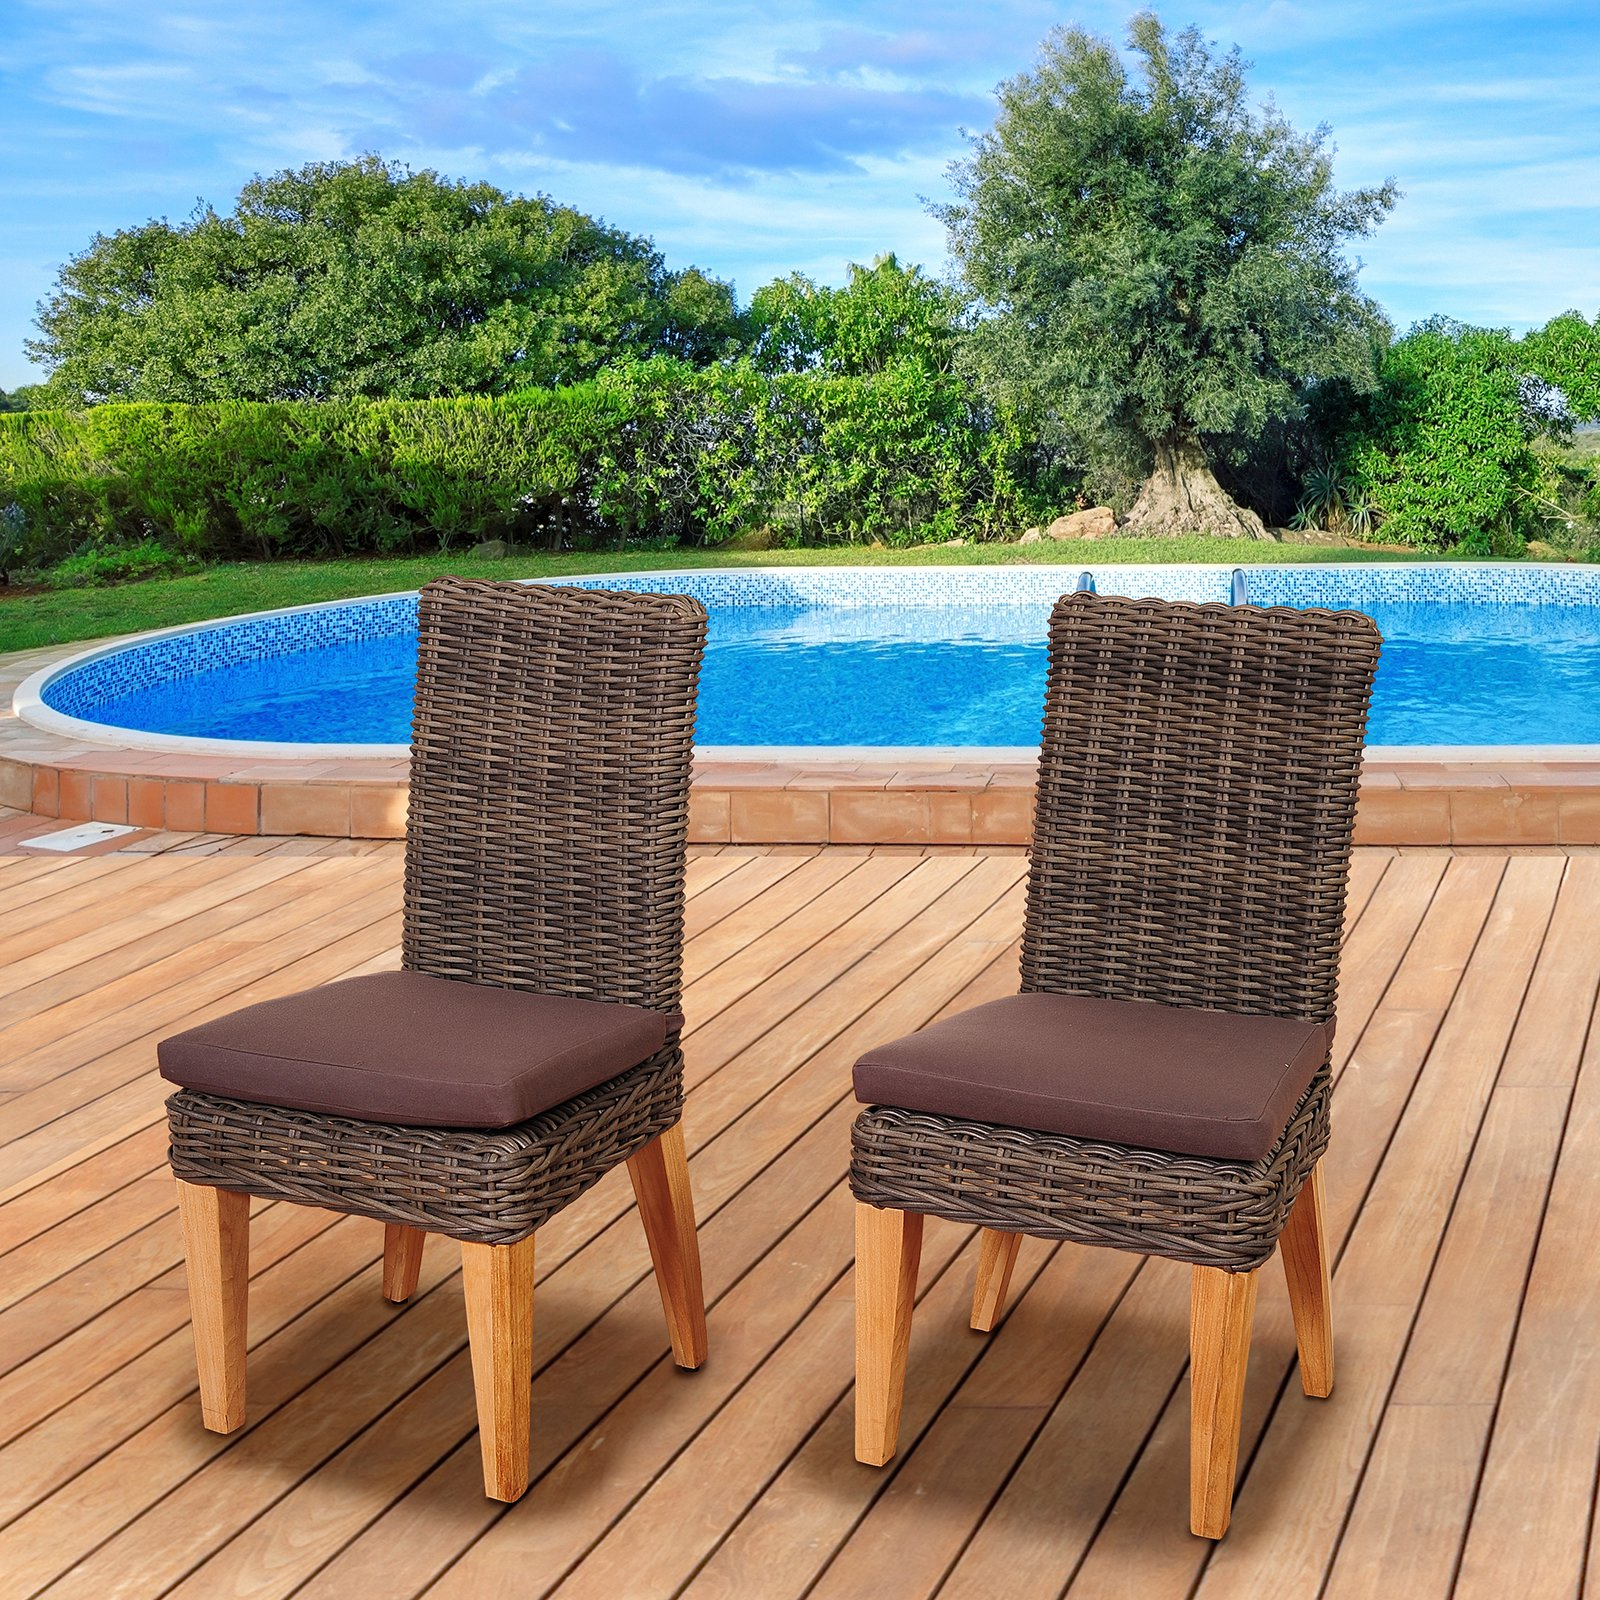 Amazonia Alto 2 Piece Chair Set with Cushions